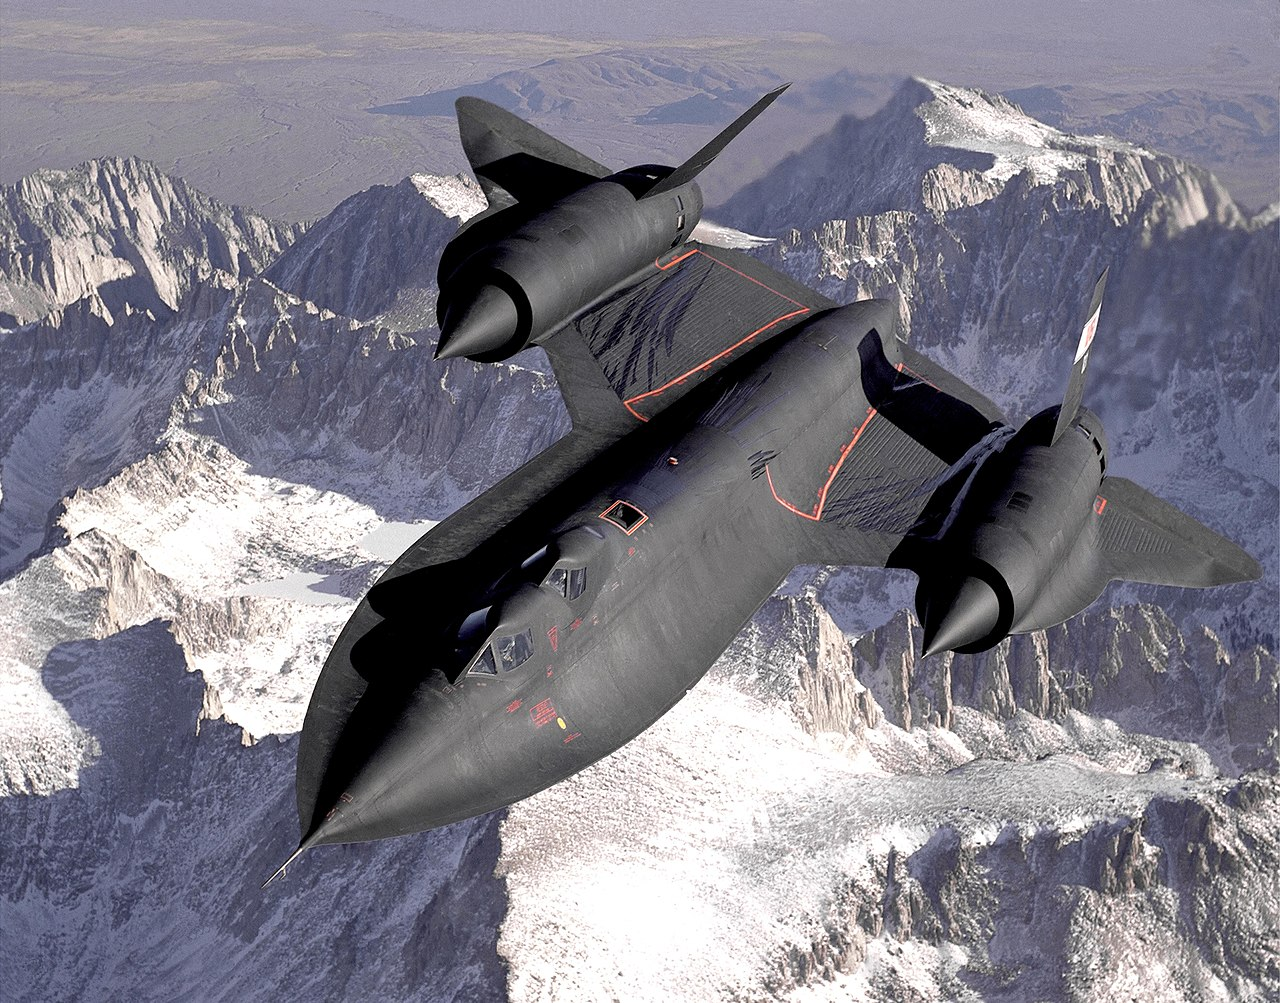 http://upload.wikimedia.org/wikipedia/commons/thumb/9/97/Lockheed_SR-71_Blackbird.jpg/1280px-Lockheed_SR-71_Blackbird.jpg